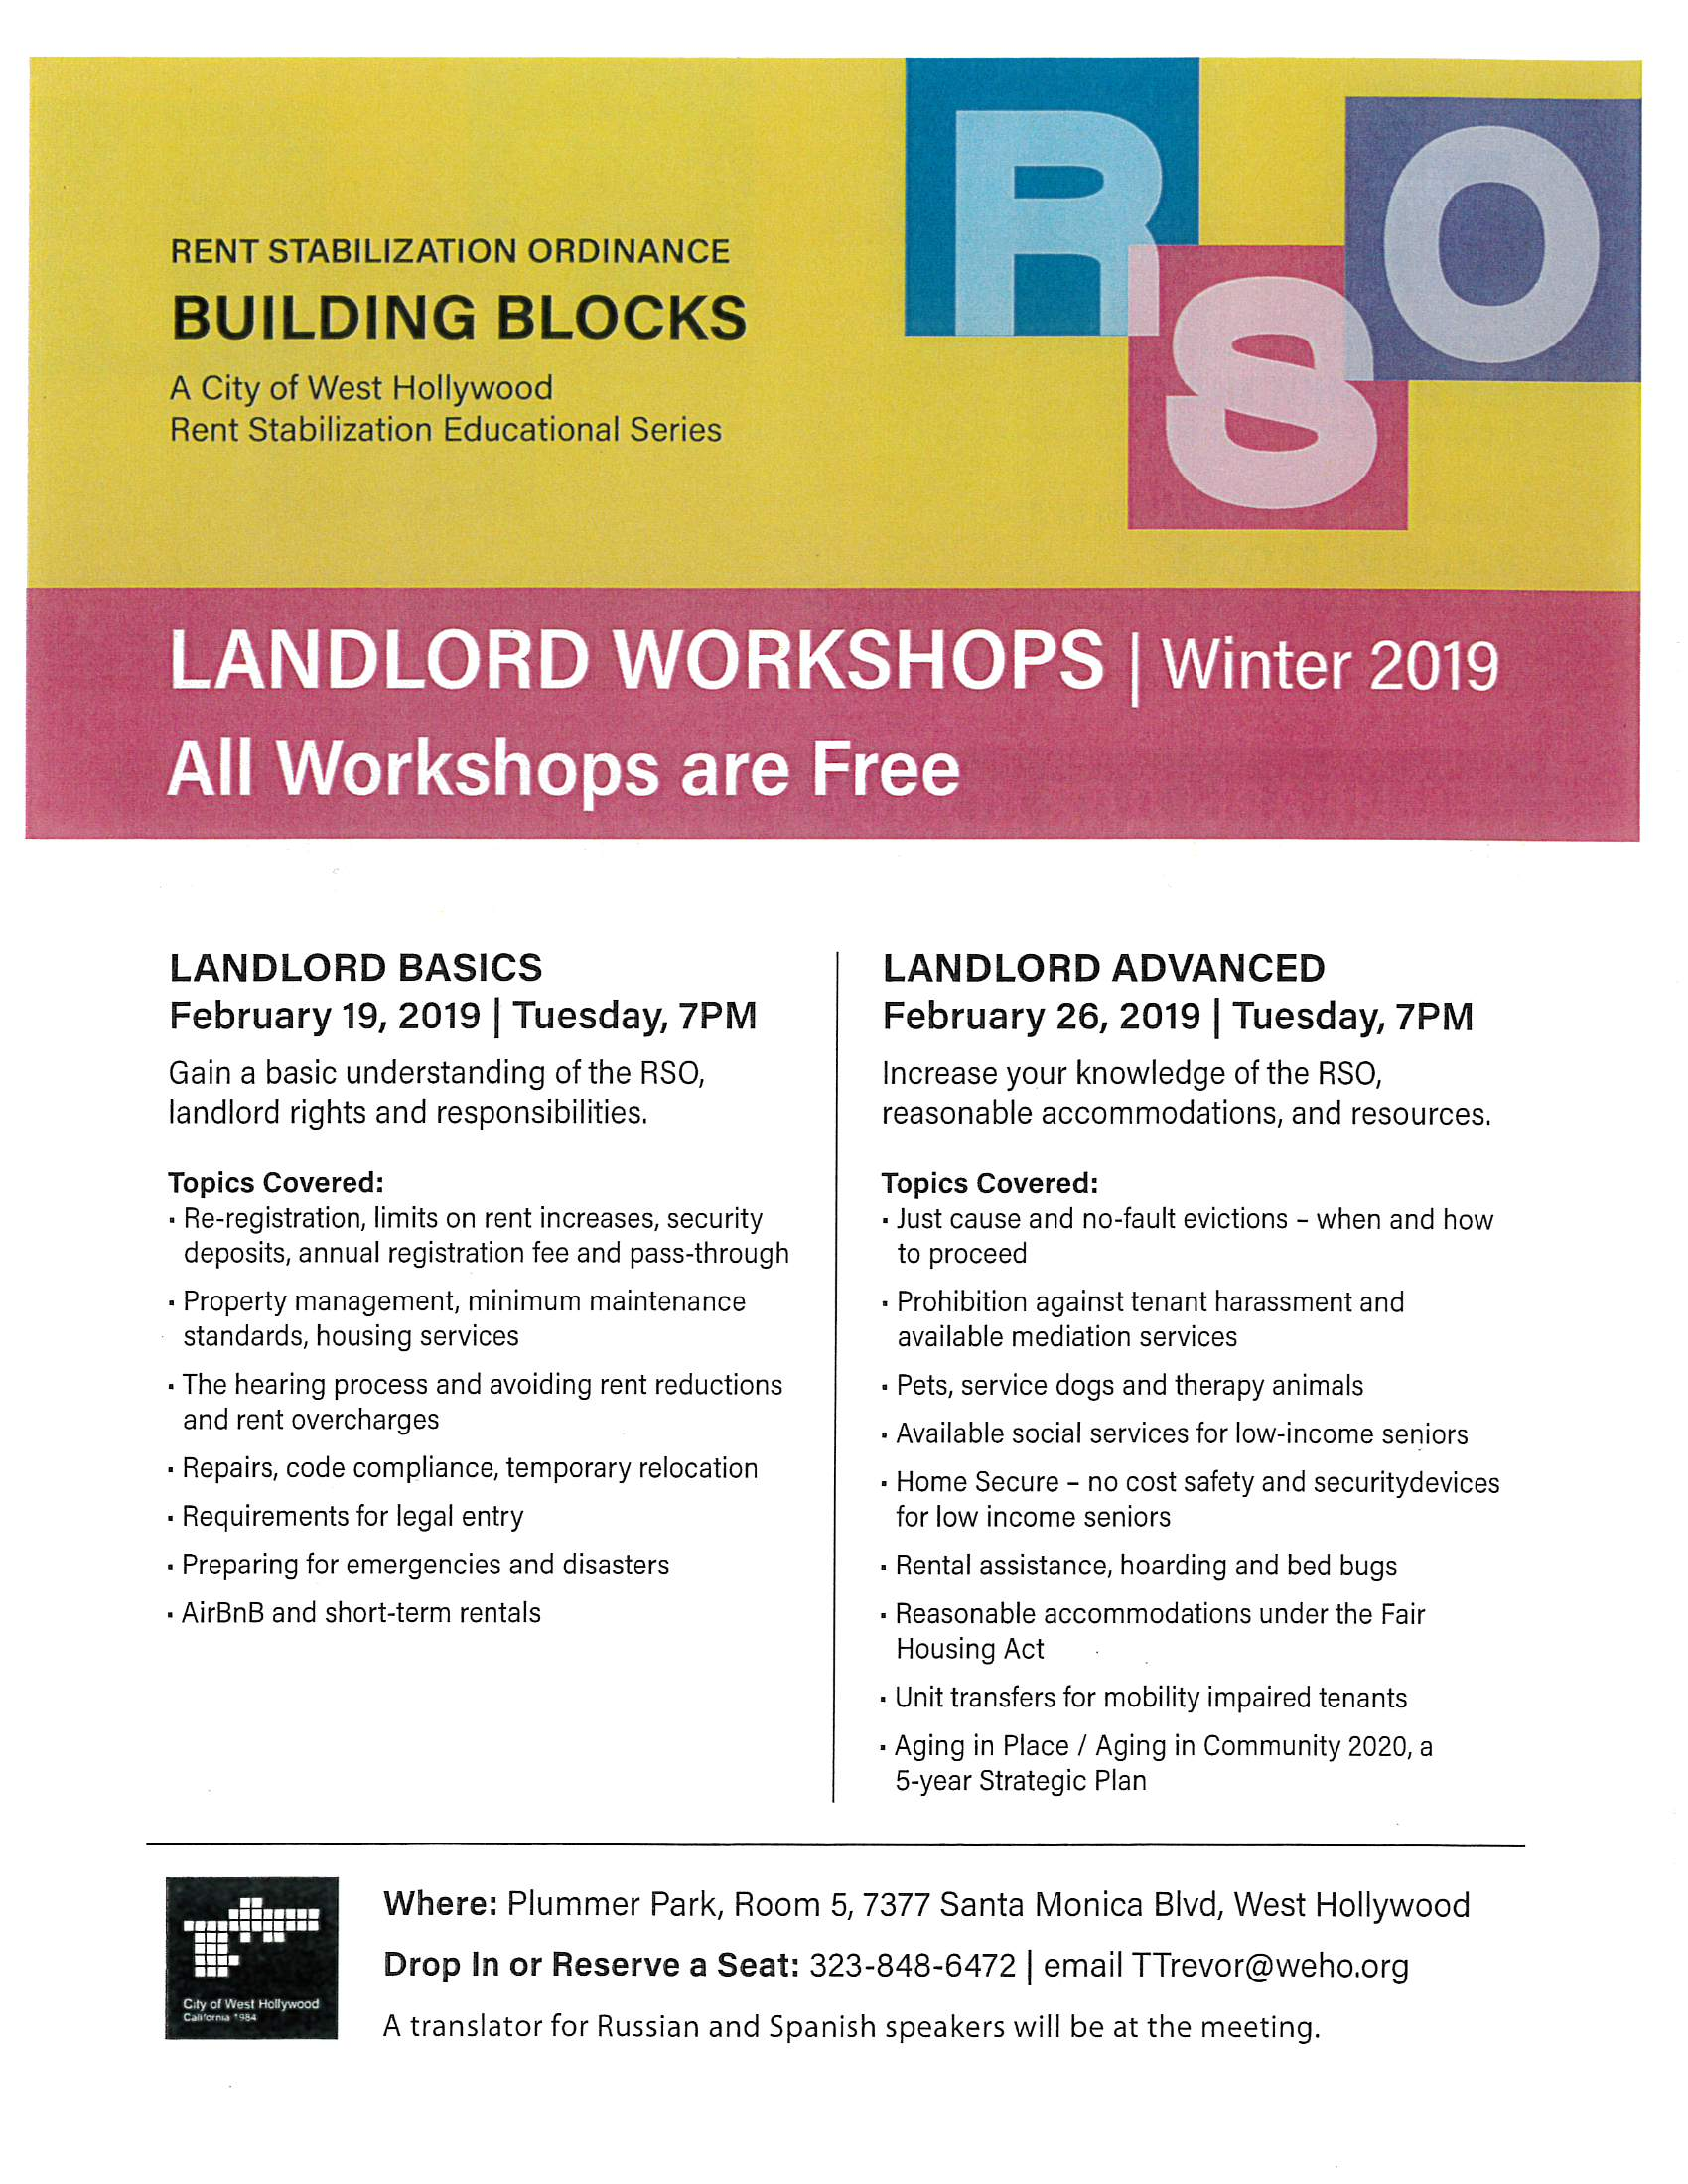 Building Blocks - 2019 - Landlord Workshops